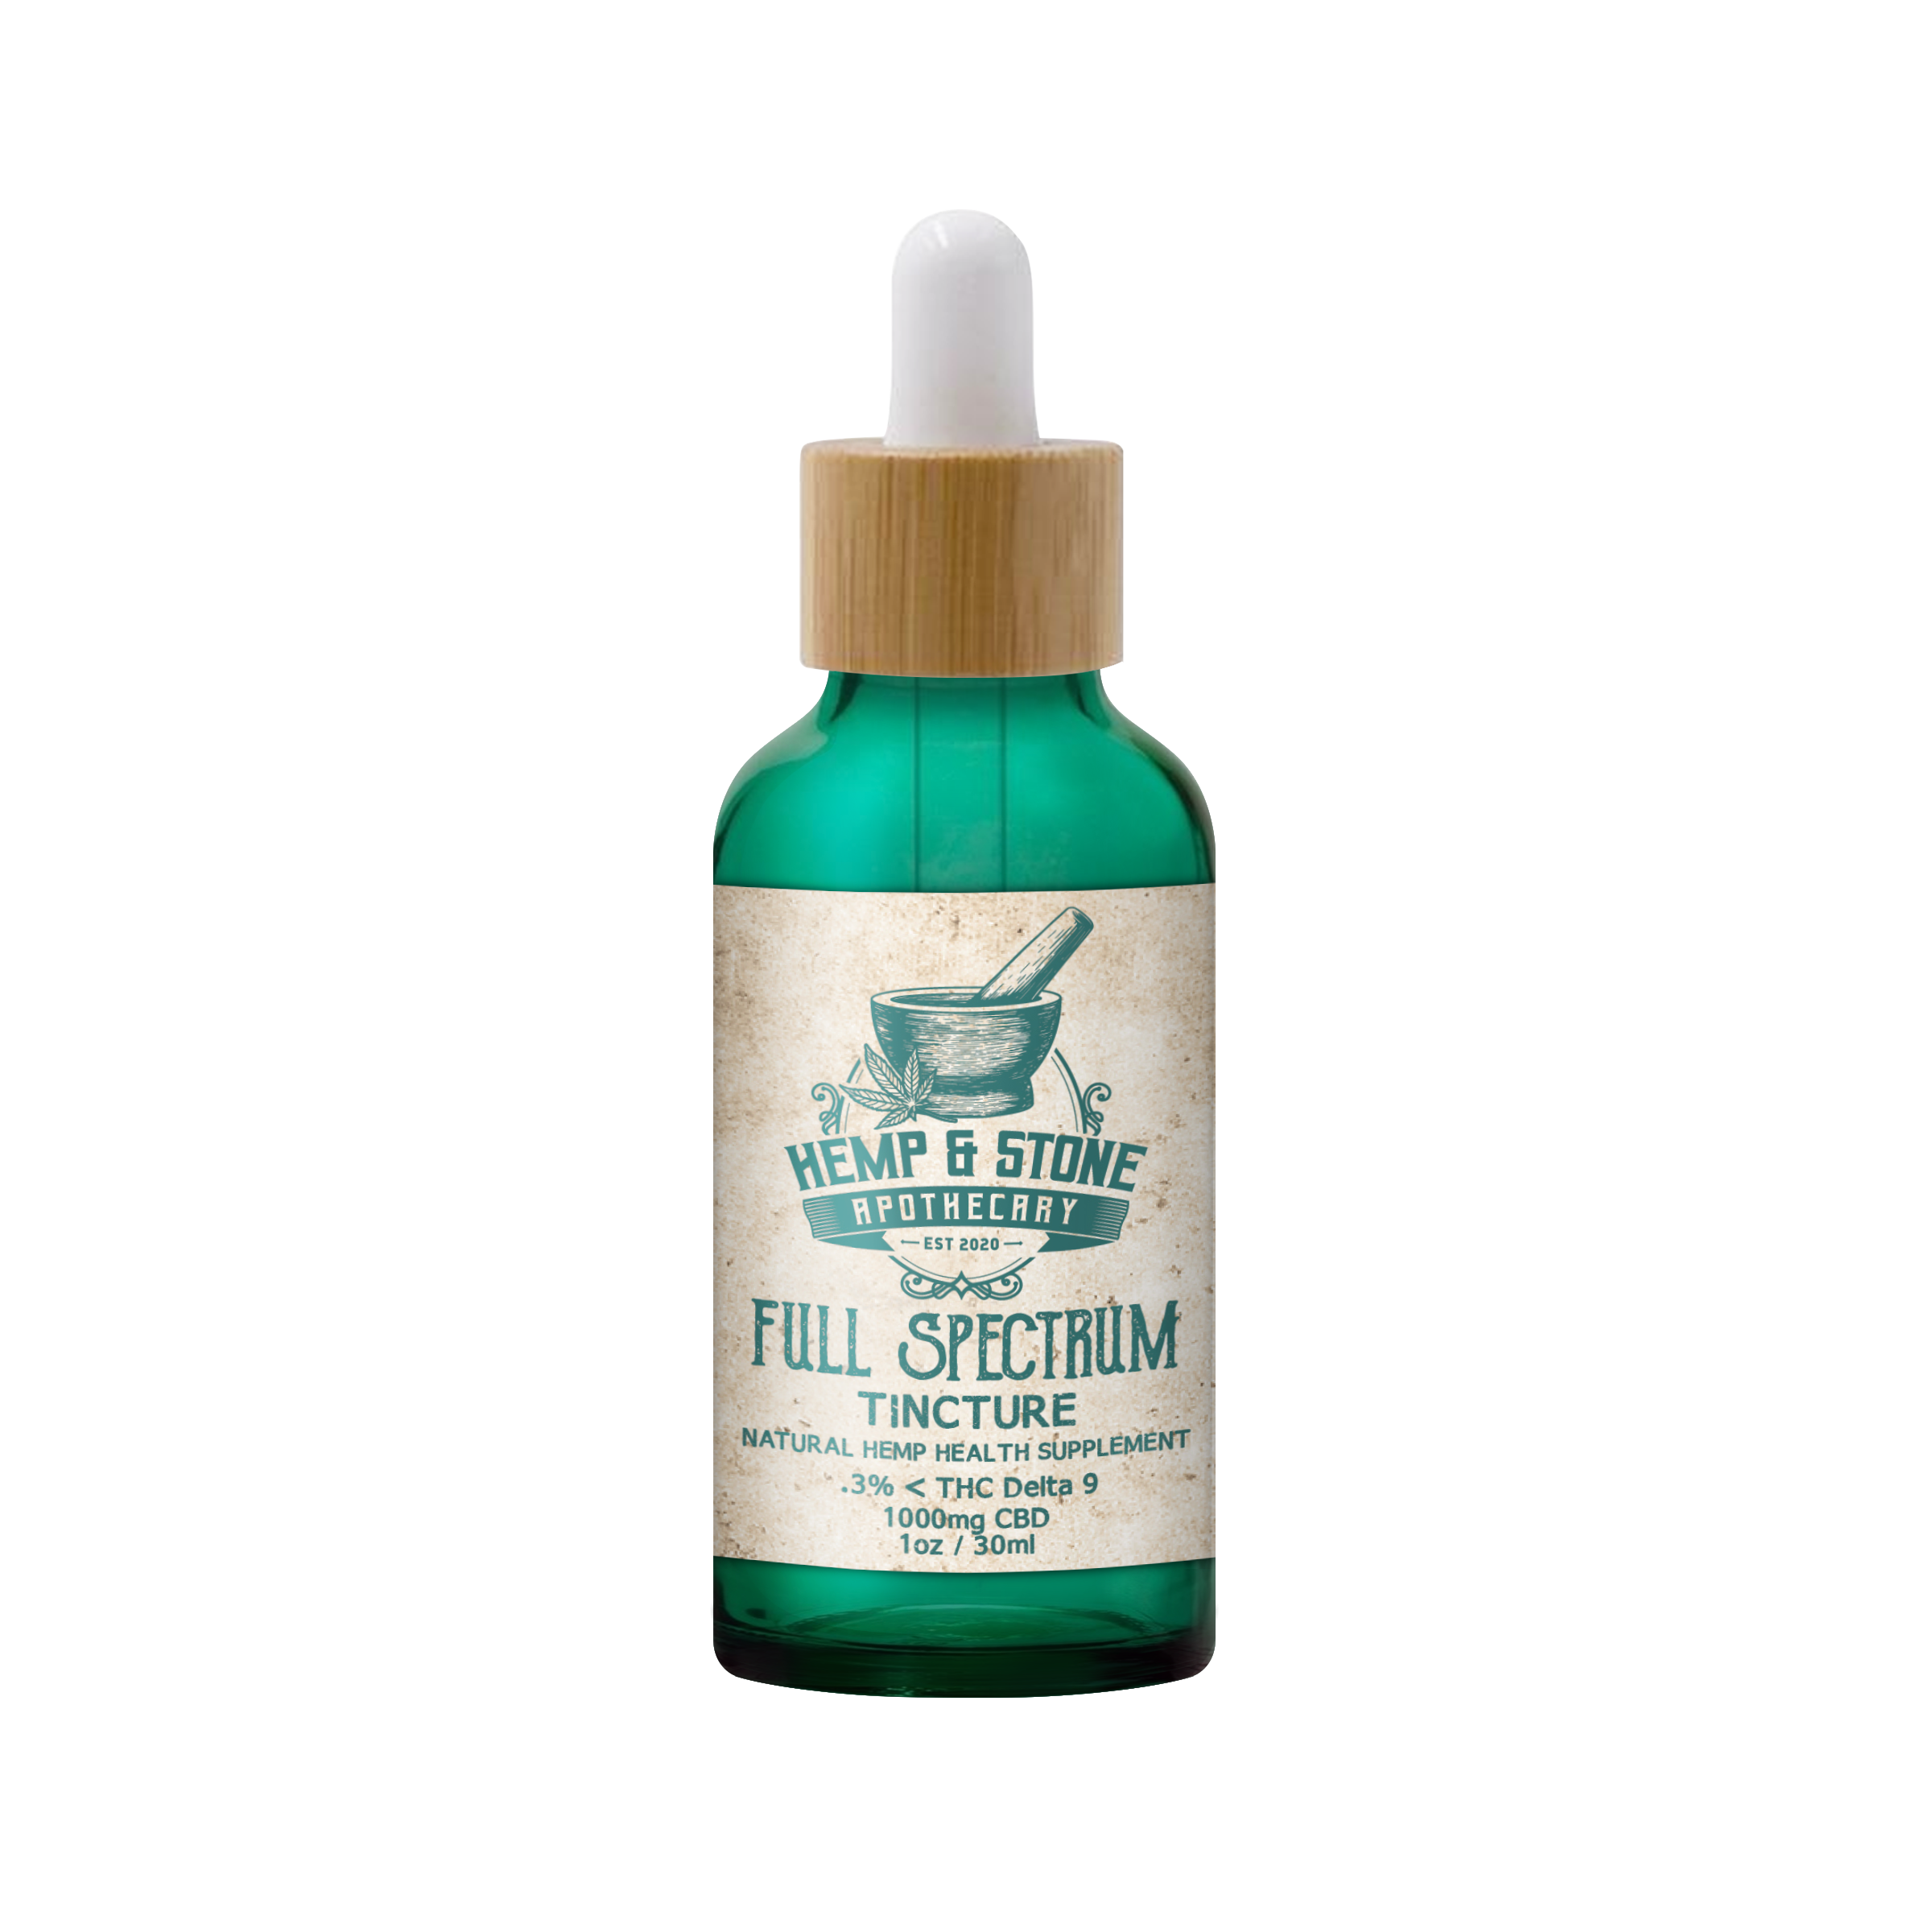 Hemp & Stone Apothecary Full Spectrum CBD Tincture 1000mg